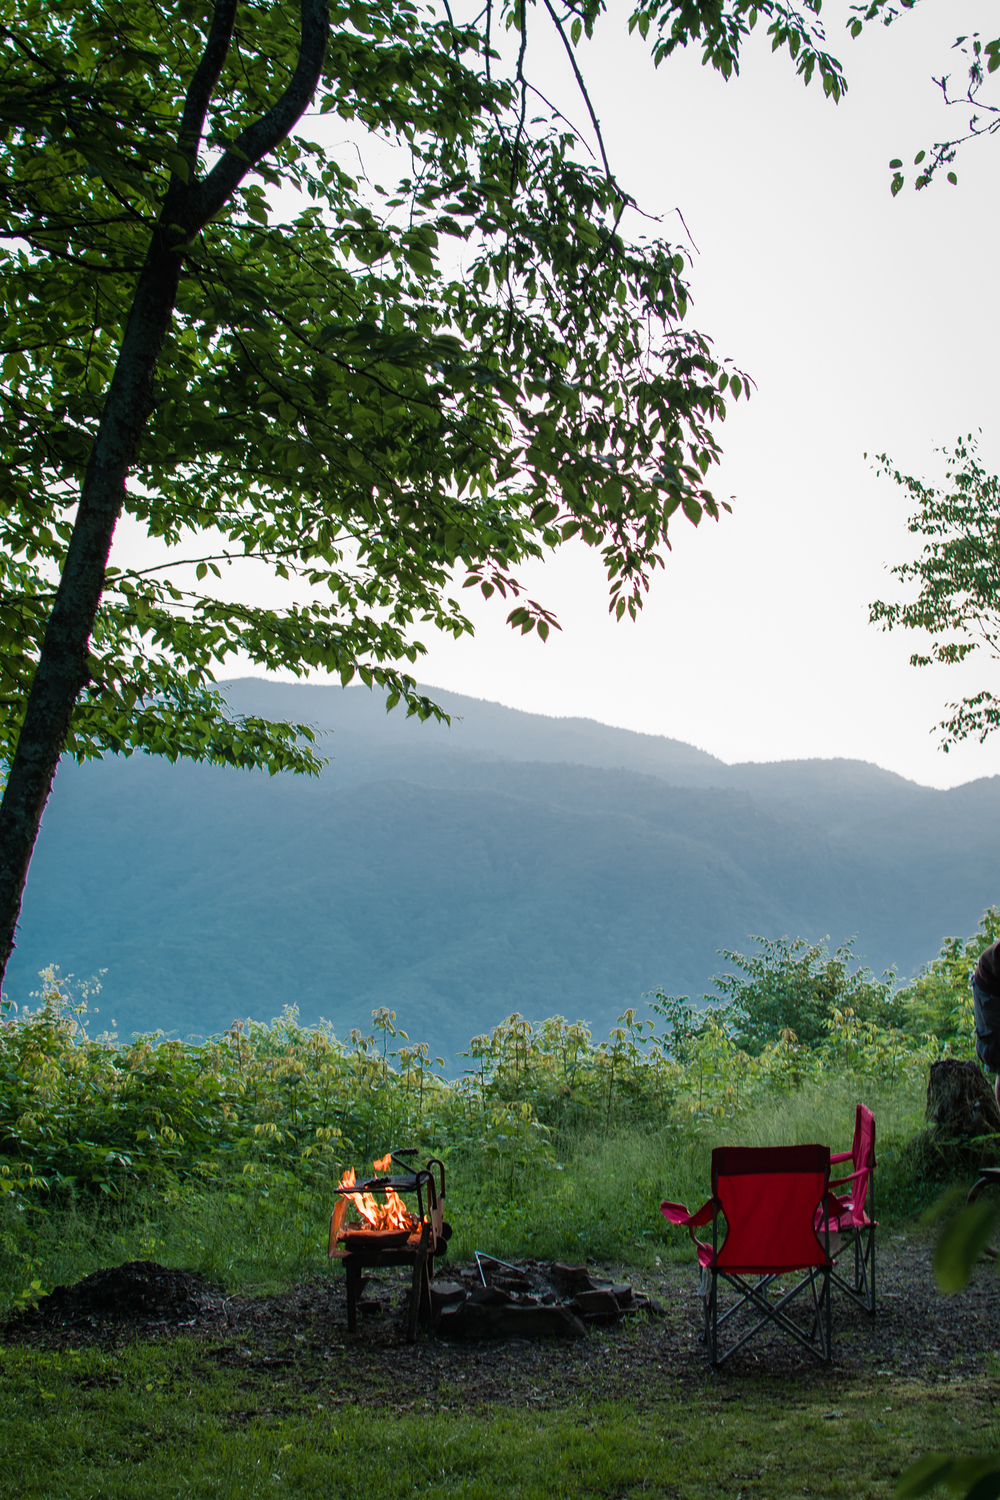 AshevilleFolk.com | Camping with Wine | Campground: Mile High